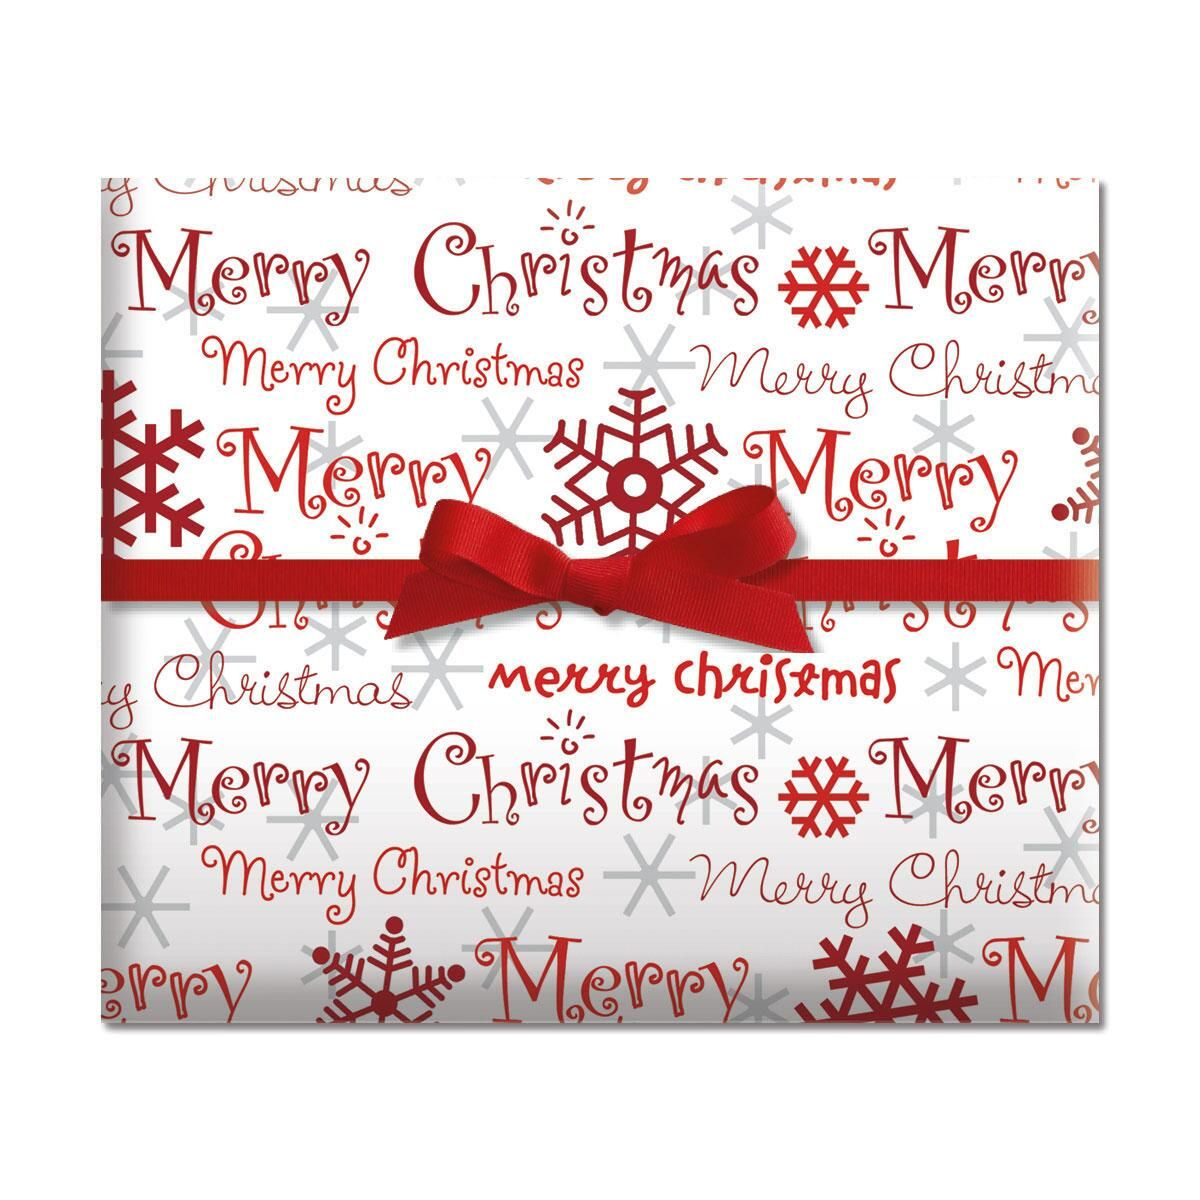 Merry Christmas Script Jumbo Rolled Gift Wrap